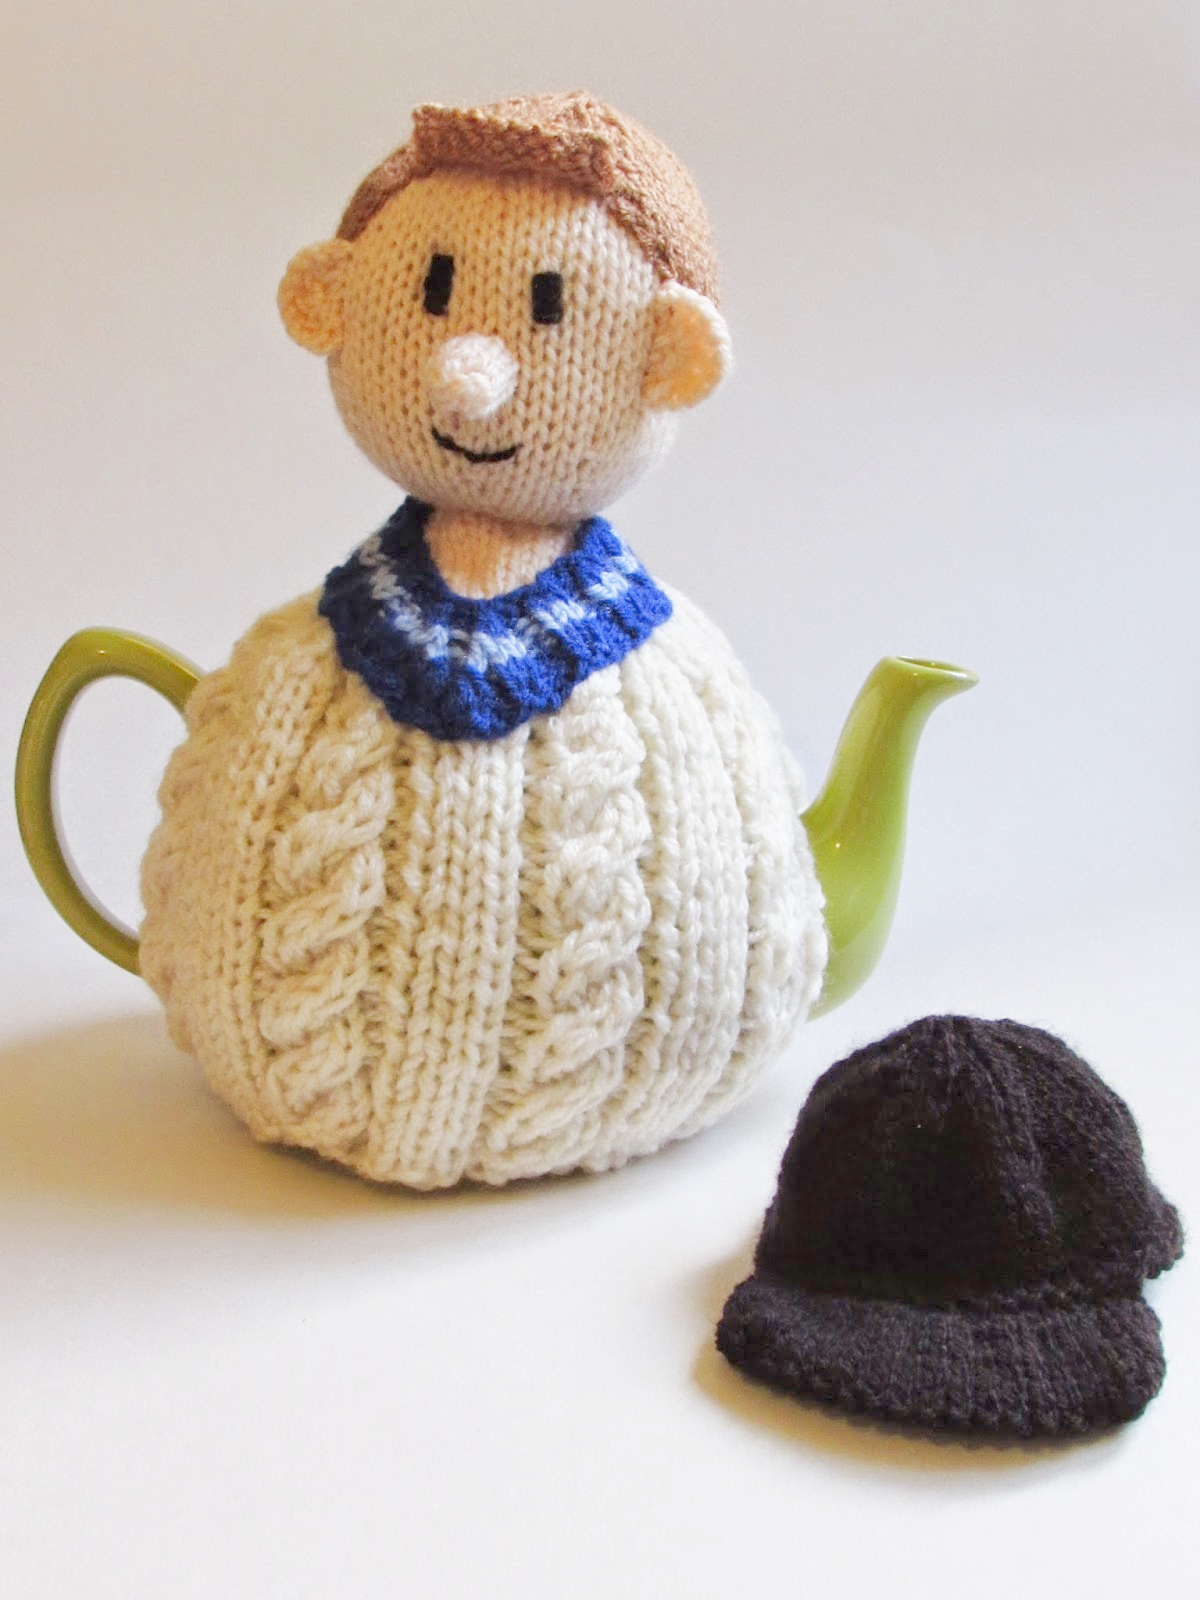 Cricketer Tea Cosy Knitting Pattern